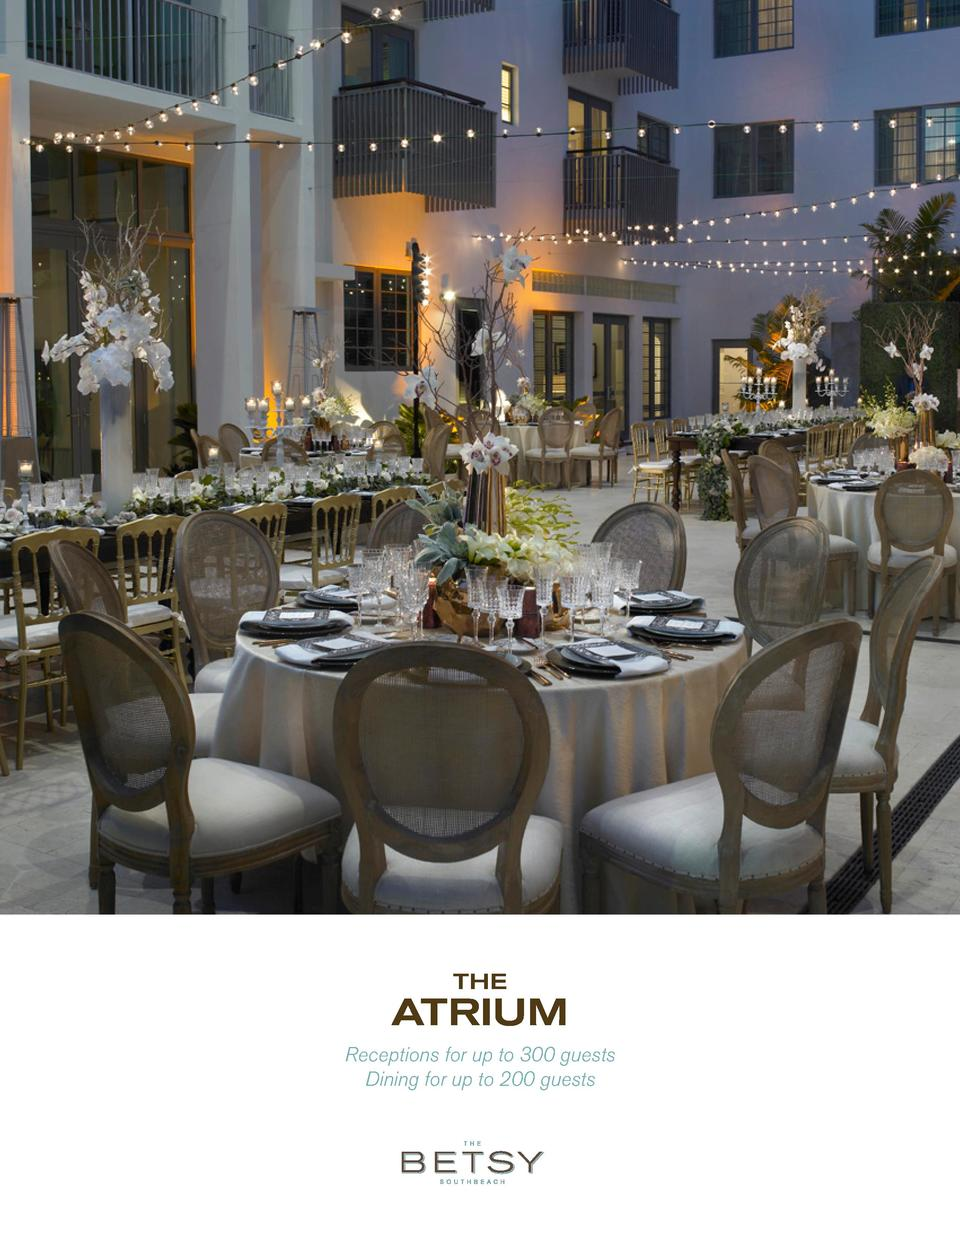 THE  ATRIUM Receptions for up to 300 guests Dining for up to 200 guests